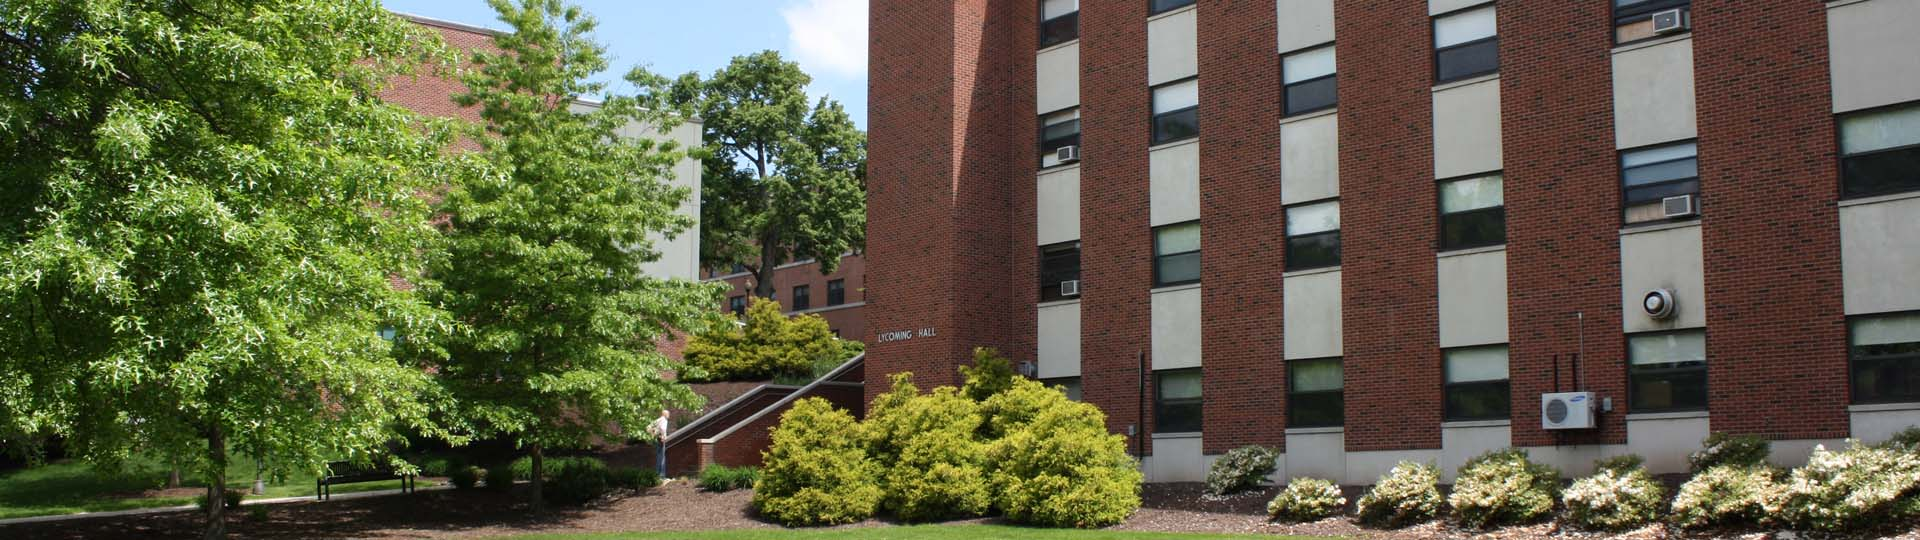 Lycoming Residence Hall